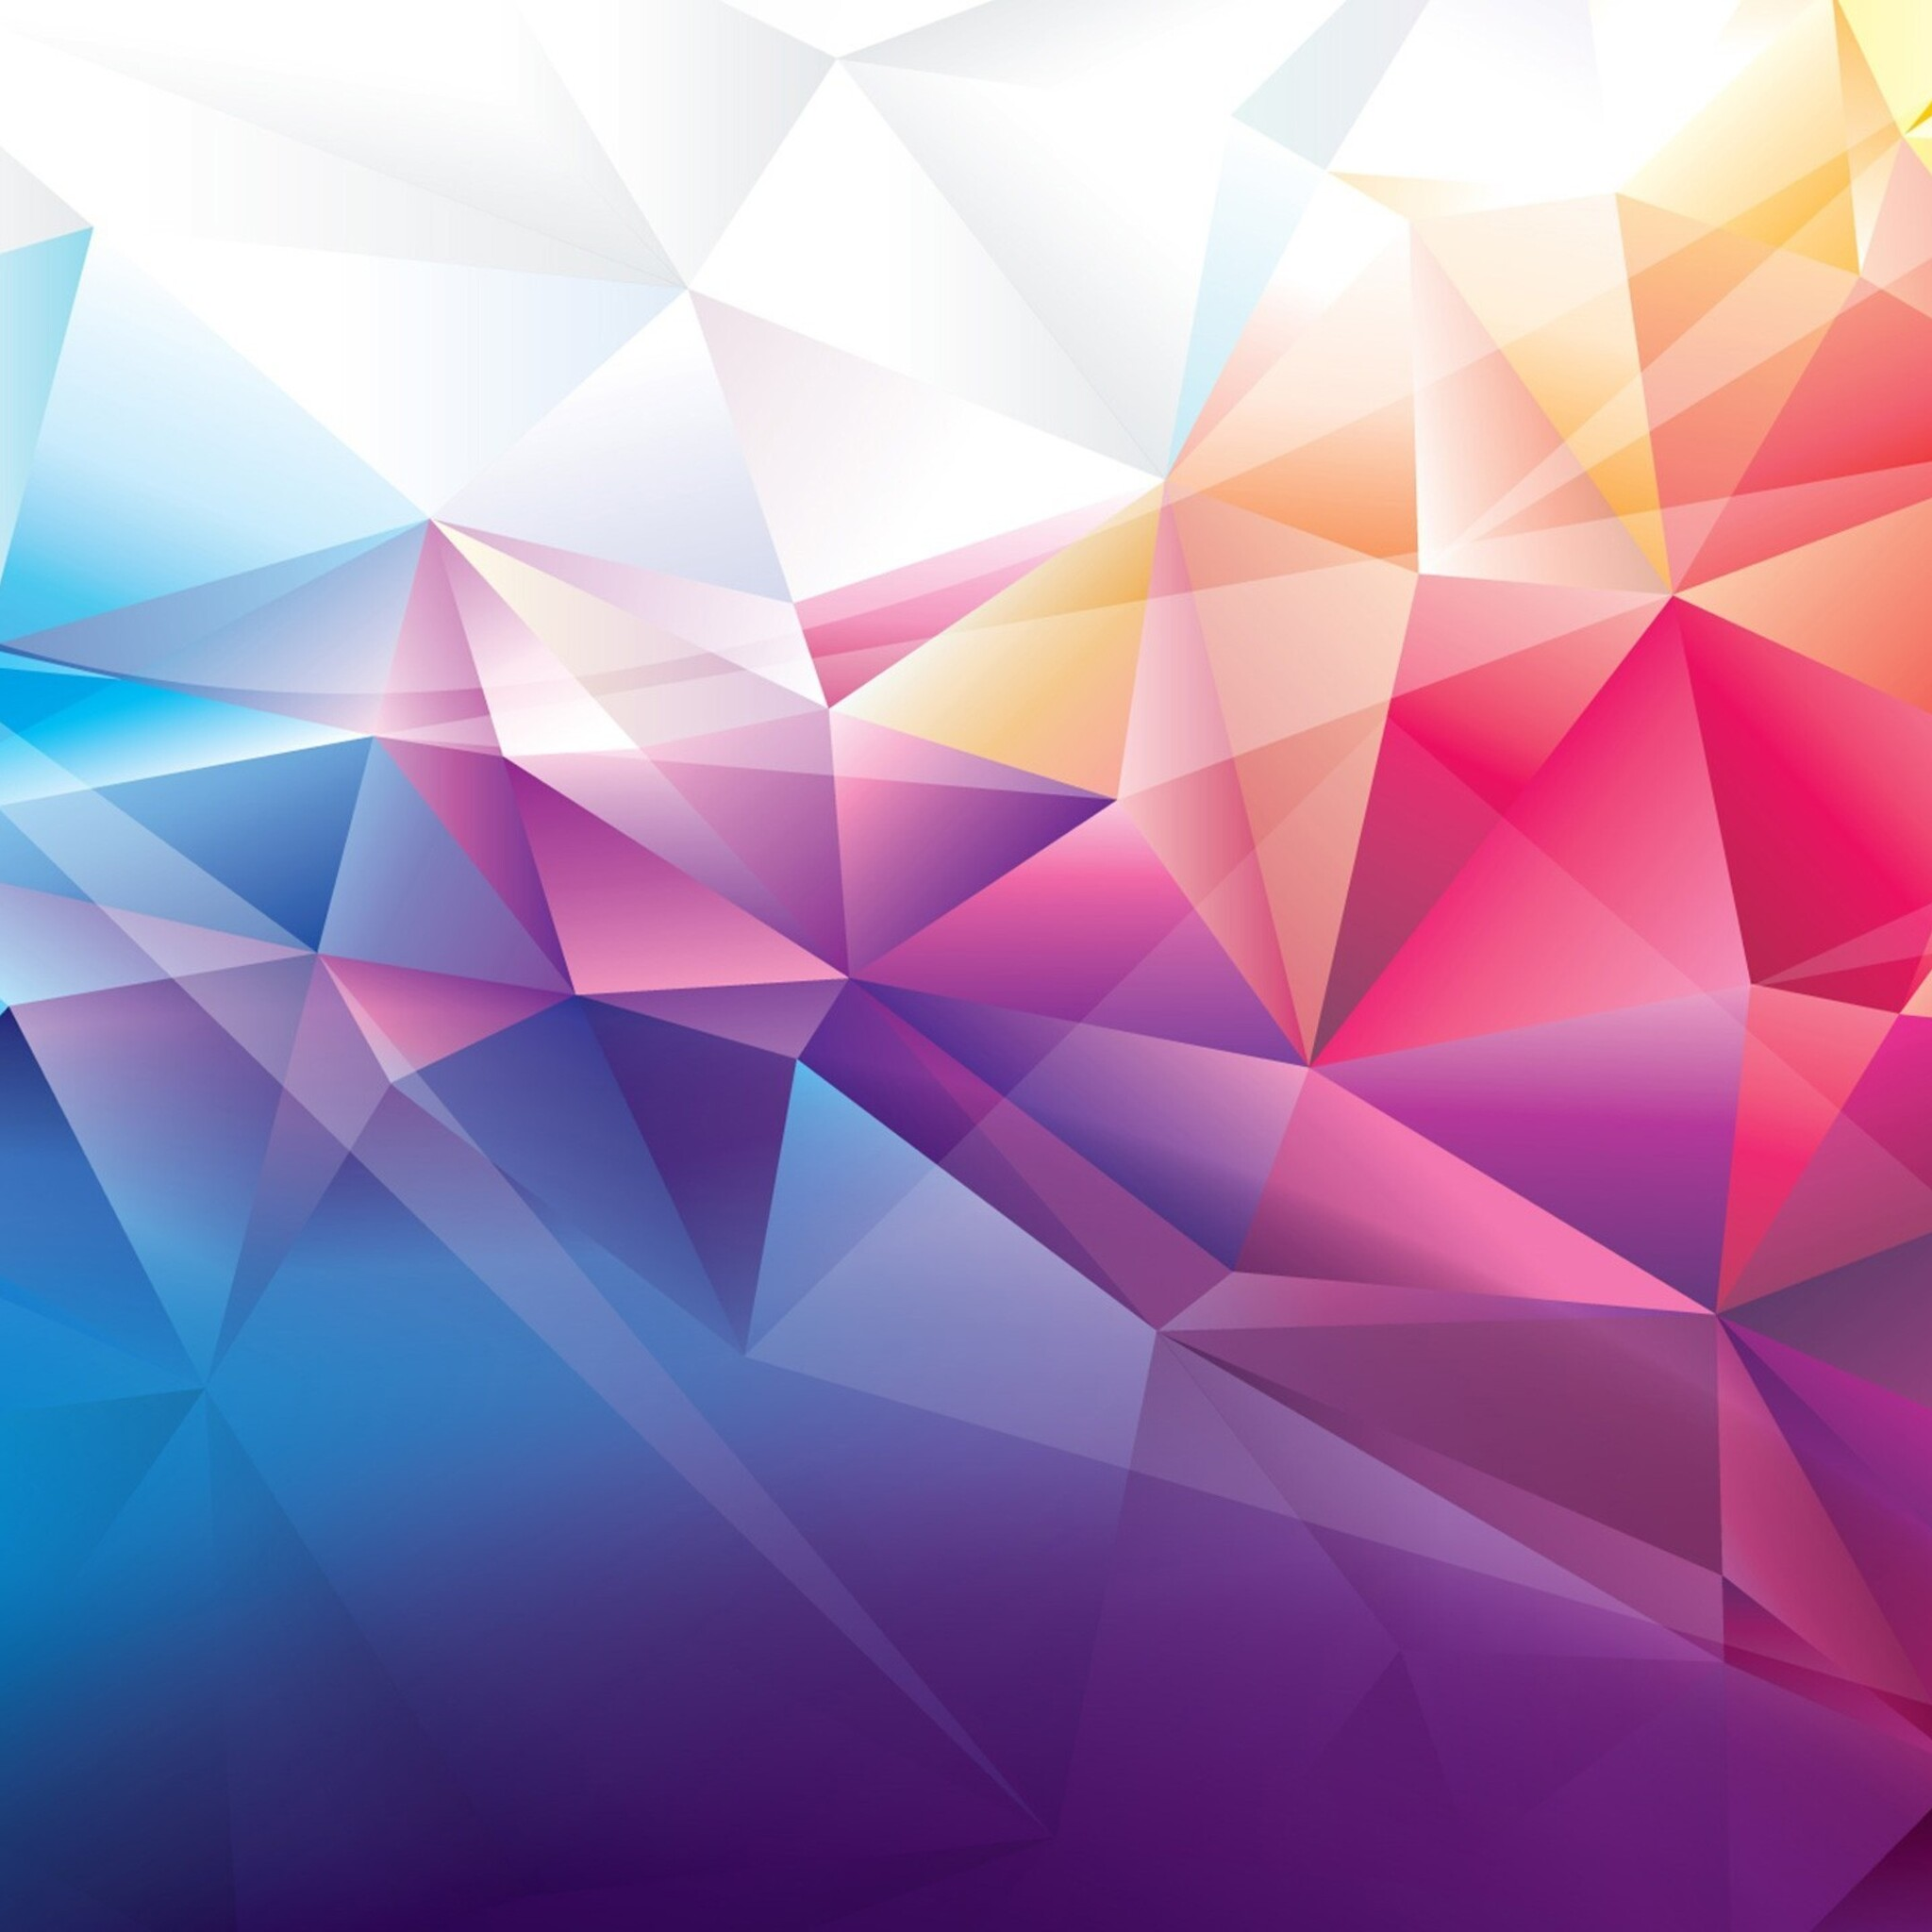 2048x2048 colorful polygons ipad air hd 4k wallpapers, images